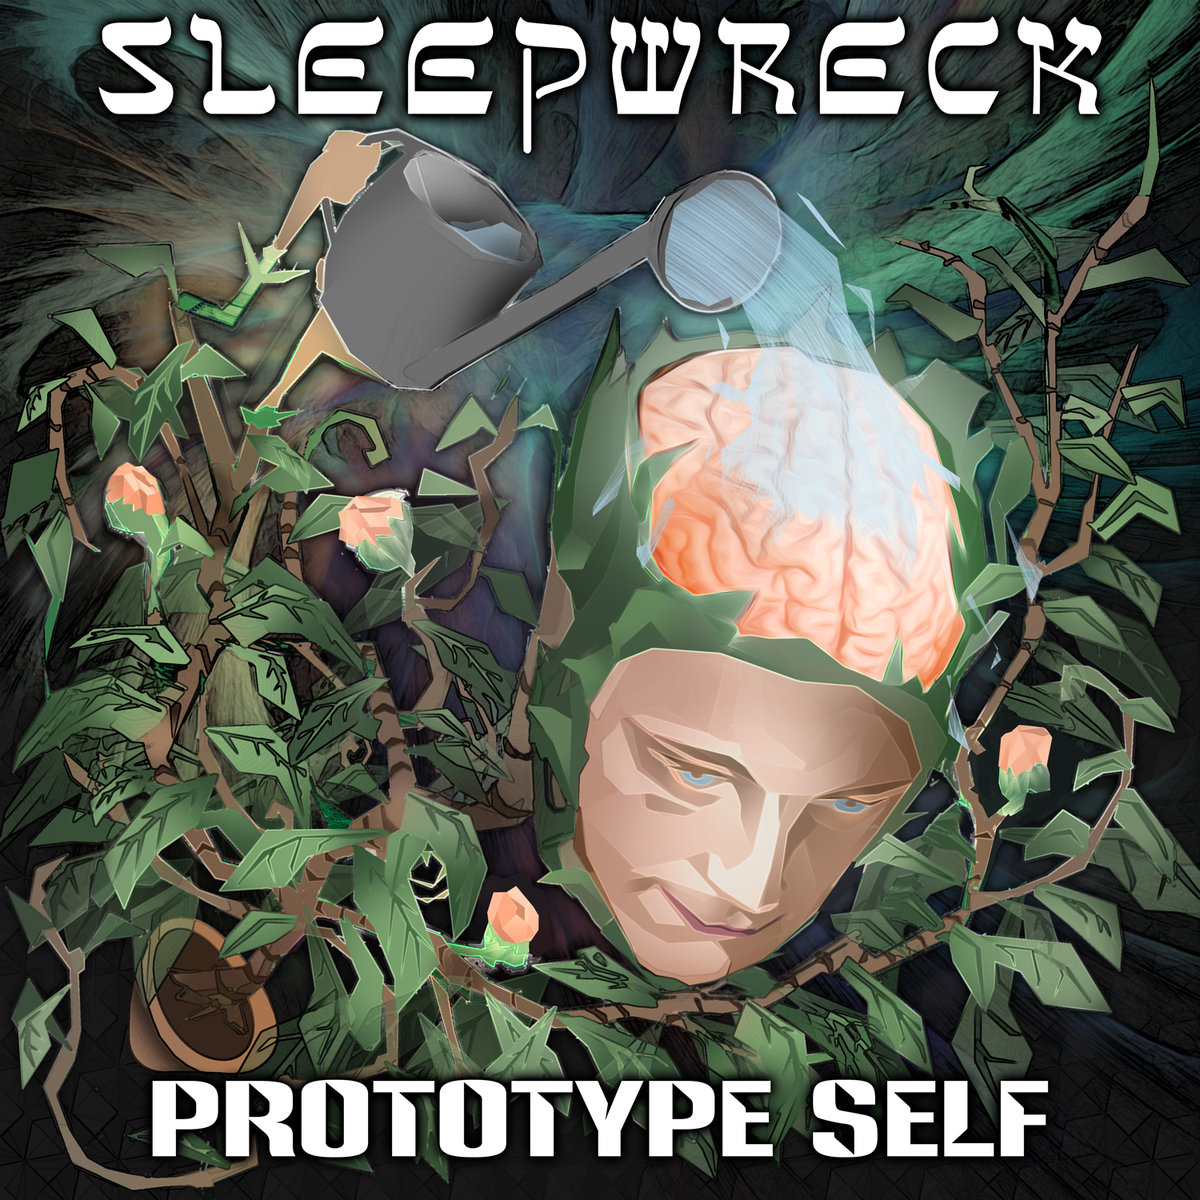 Goopsteppa - Lighten Thy Heavy Heart (Sleepwreck Remix) @ 'Prototype Self' album (bass, electronic)